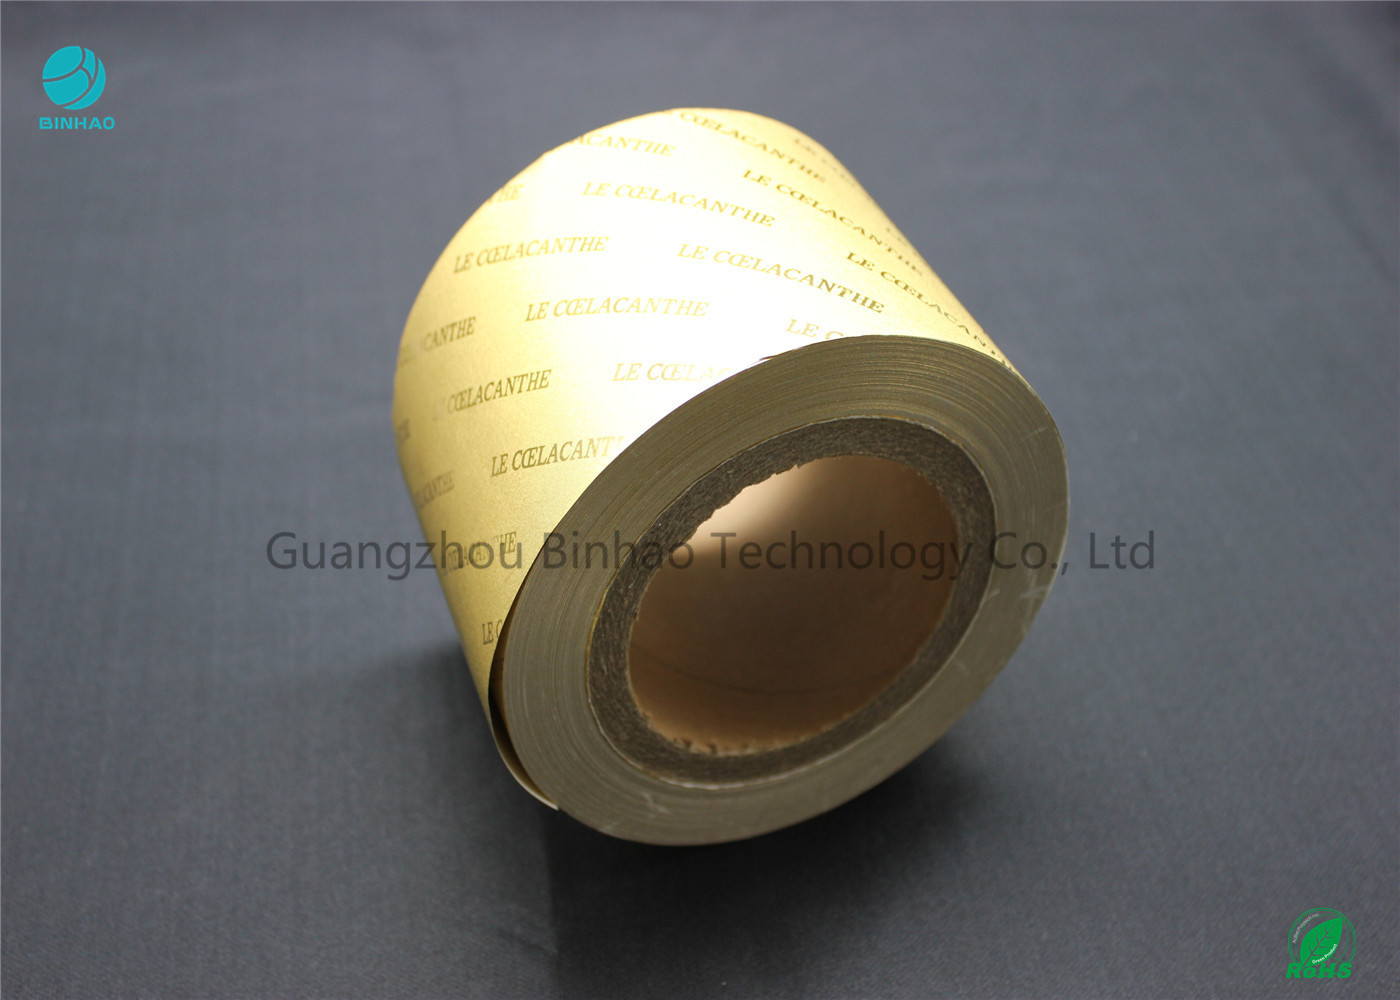 Cigarette Wrapping Backed Composite Aluminum Foil Paper 1800m Length